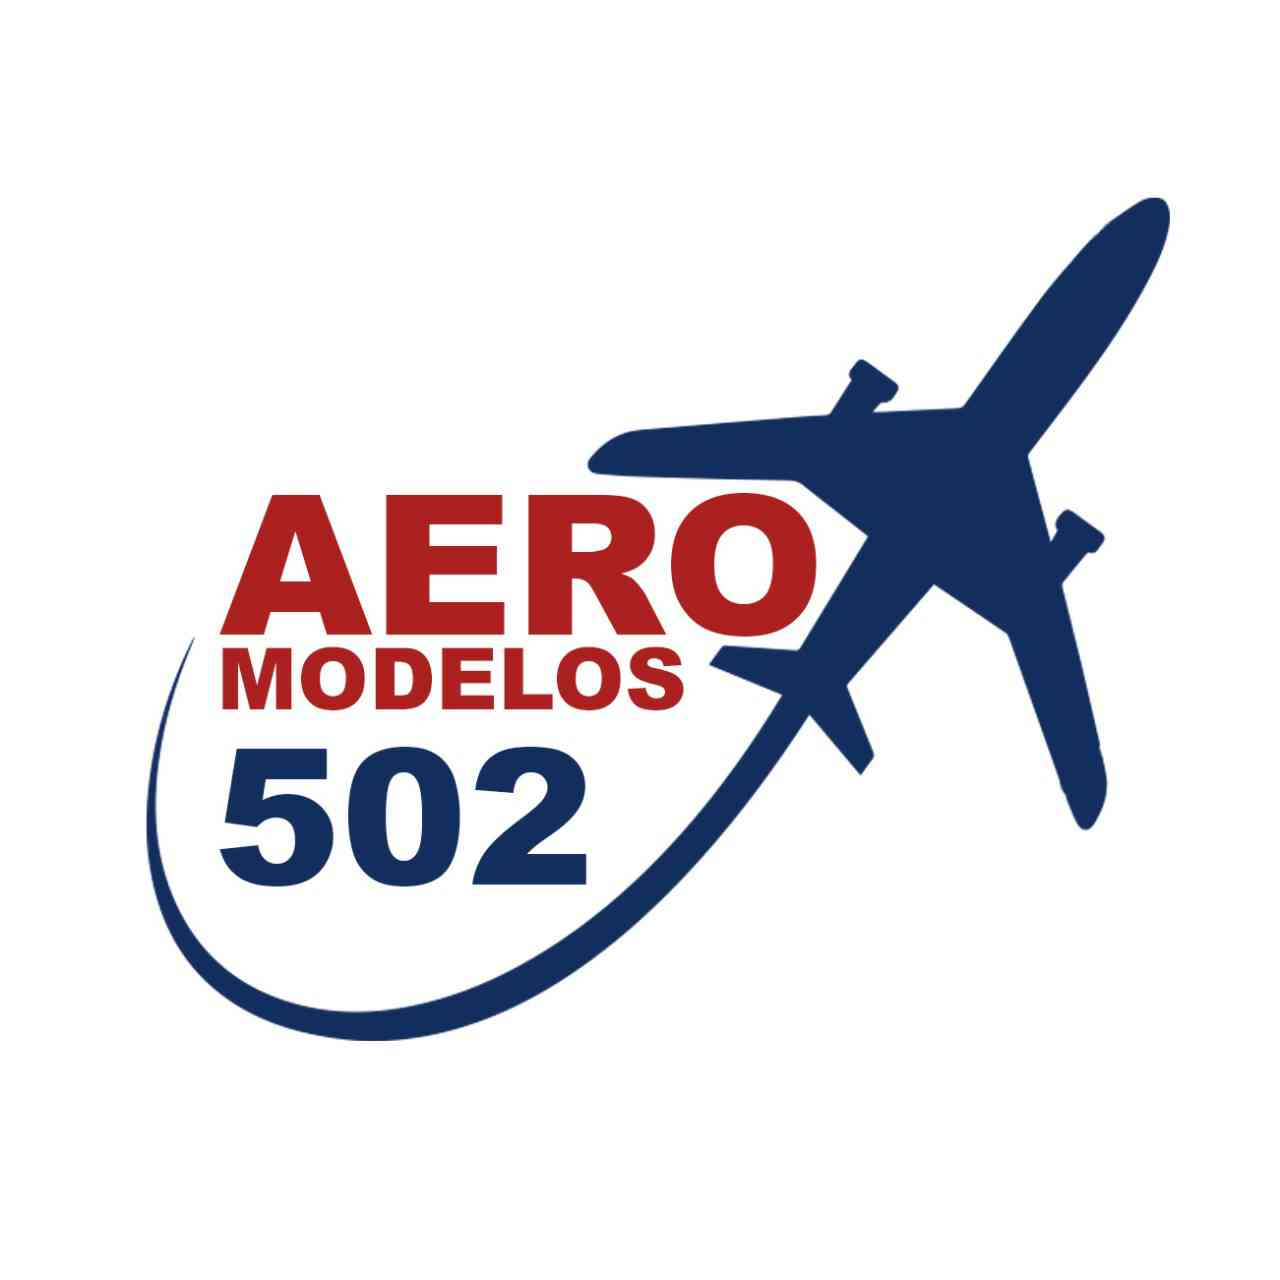 AEROMODELOS502 Aviation Hobby Shop GT